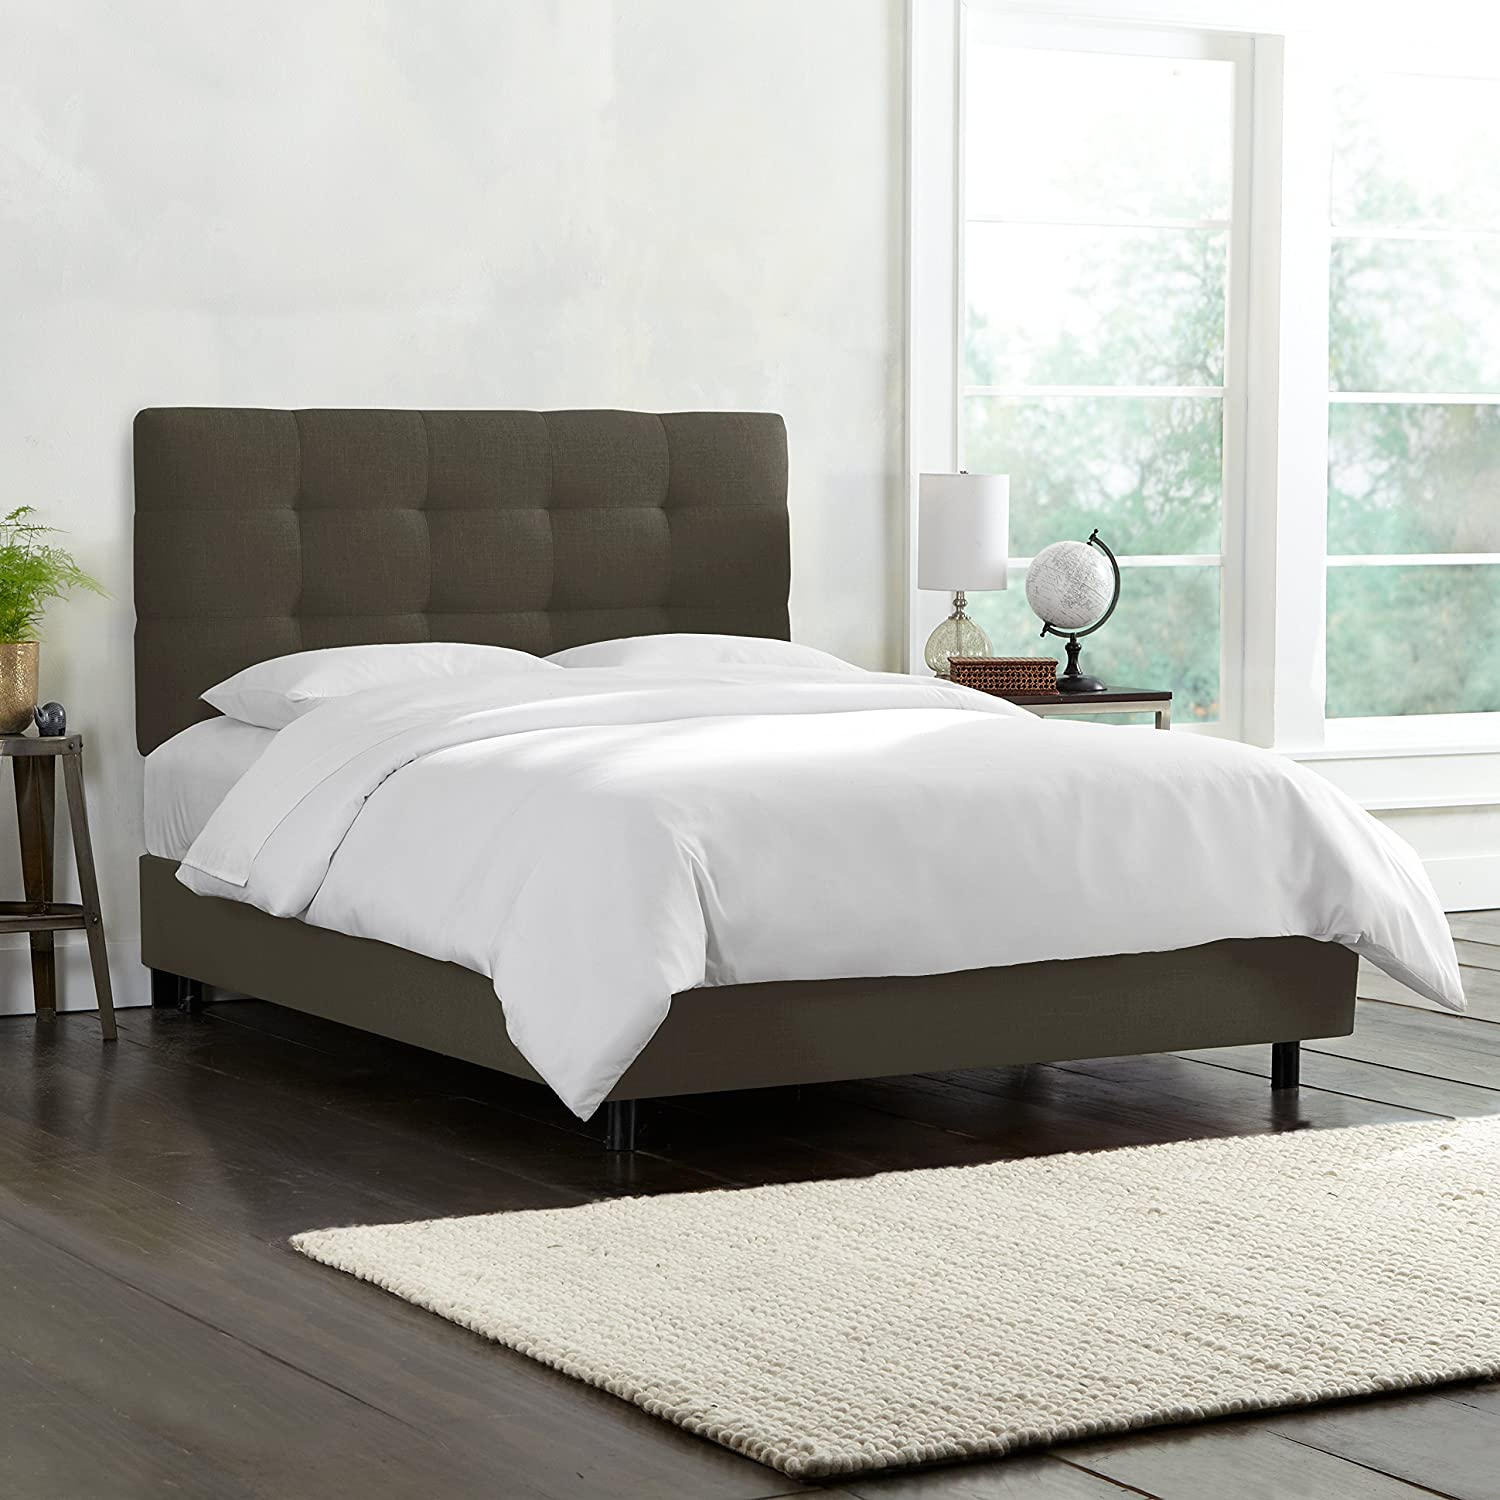 Design Tufted Bed amazon com skyline furniture tufted bed king linen charcoal kitchen dining